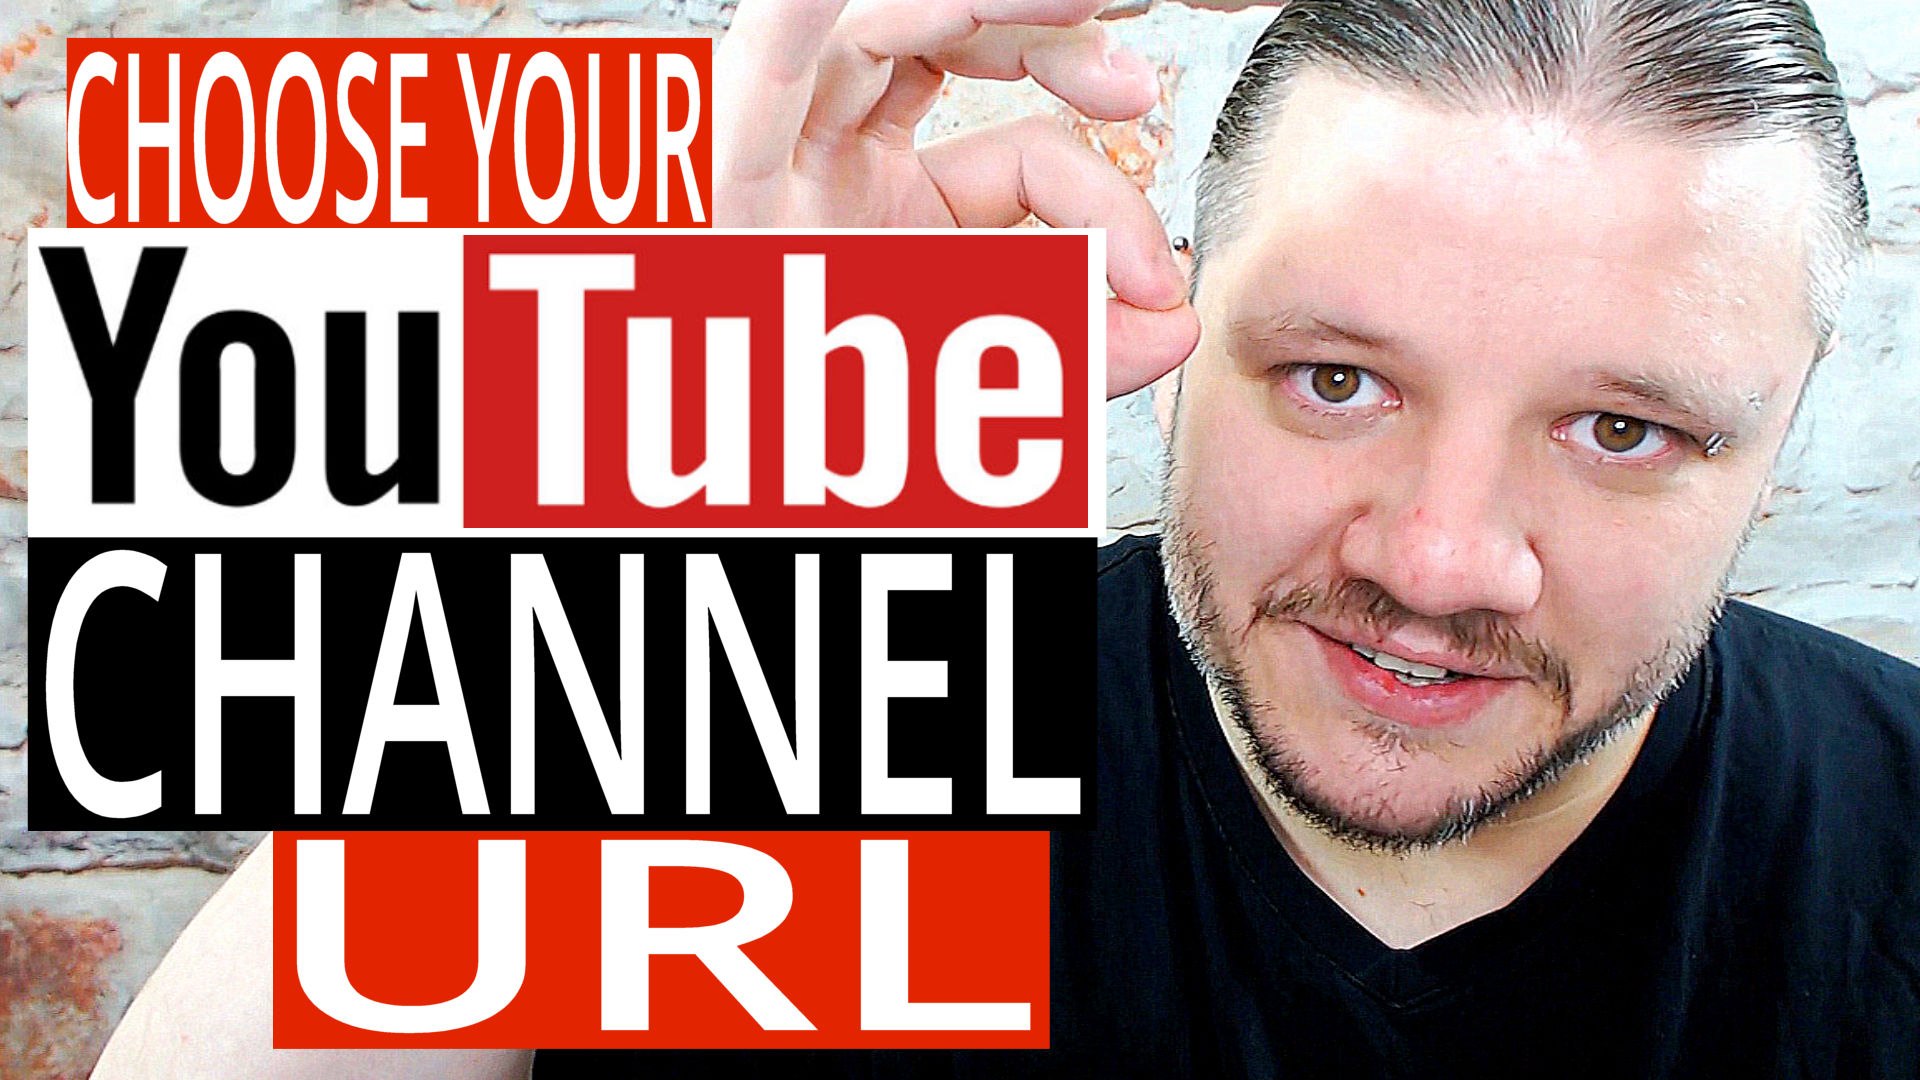 alanspicer,asyt,custom url,how to get a custom url on youtube,change youtube url,how to create a custom url in youtube,youtube custom url,how to get a custom url on youtube 2018,how to change youtube url 2018,custom url youtube,custom url for youtube channel 2018,youtube custom url 2018,youtube custom url for my channel,change youtube url 2018,pick your own channel url,choose custom channel url,custom youtube url,get custom url,channel url,custom url 2018